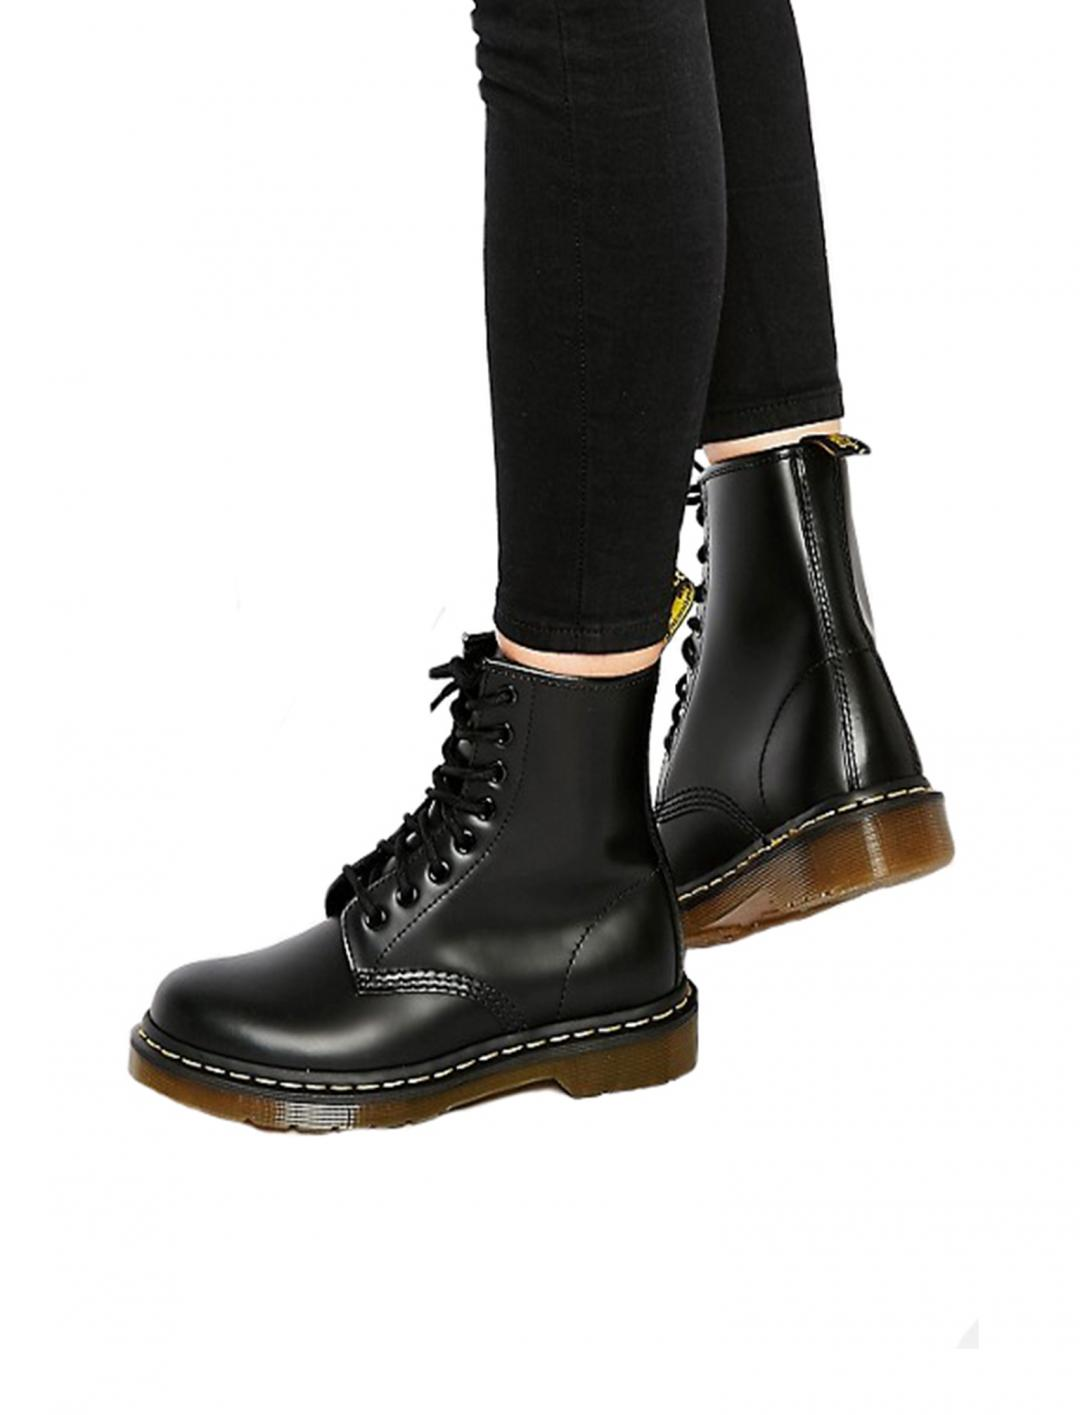 Classics Smooth Boots Shoes Dr Martens